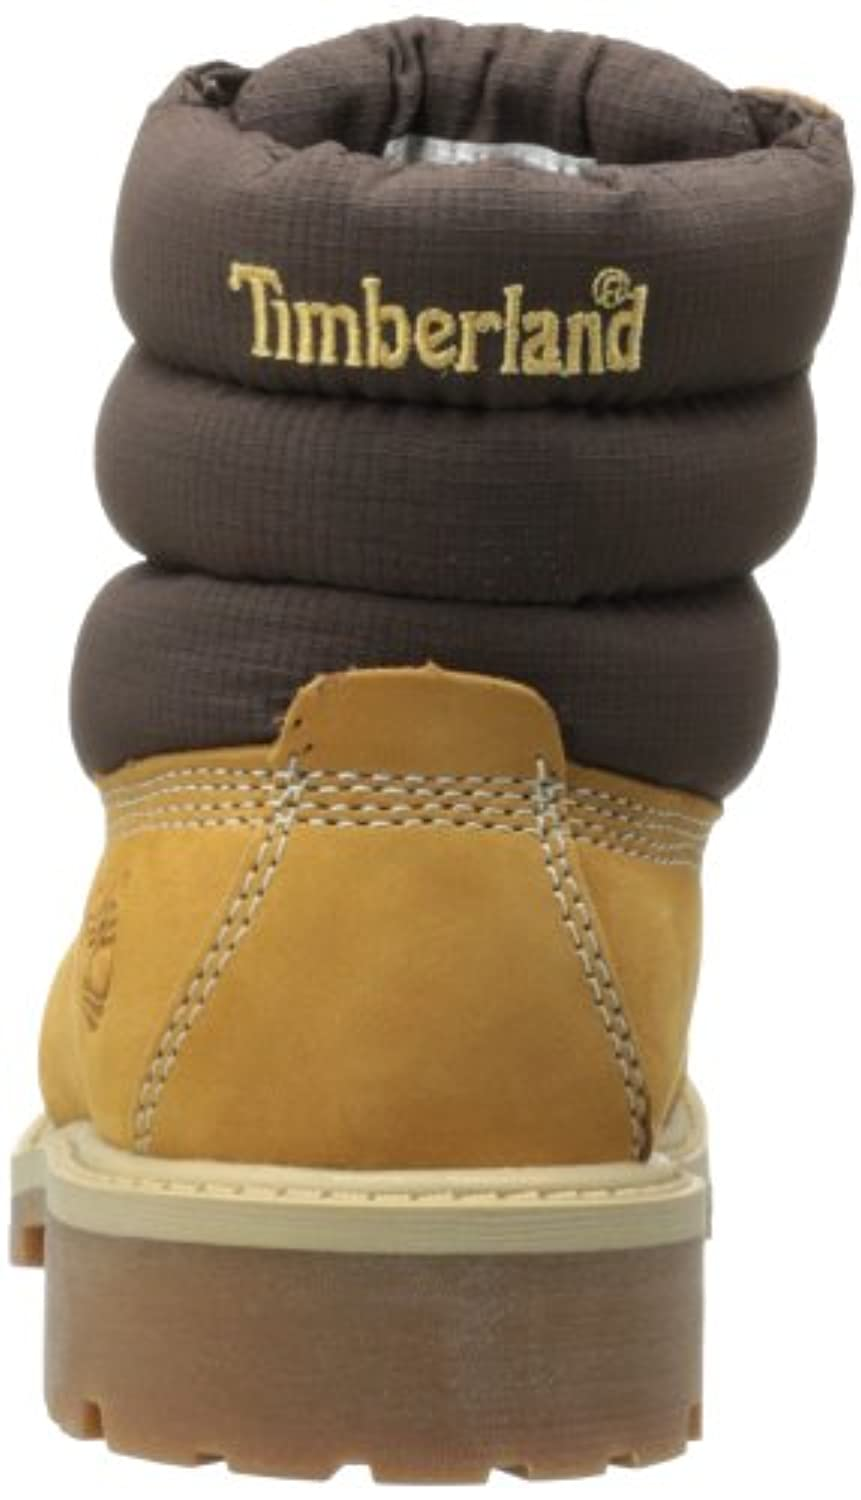 Timberland 6 In Classic Boot Ftc 6 In Quilt Boot, Unisex Children's Boots, Brown (Wheat), 6.5 Child UK